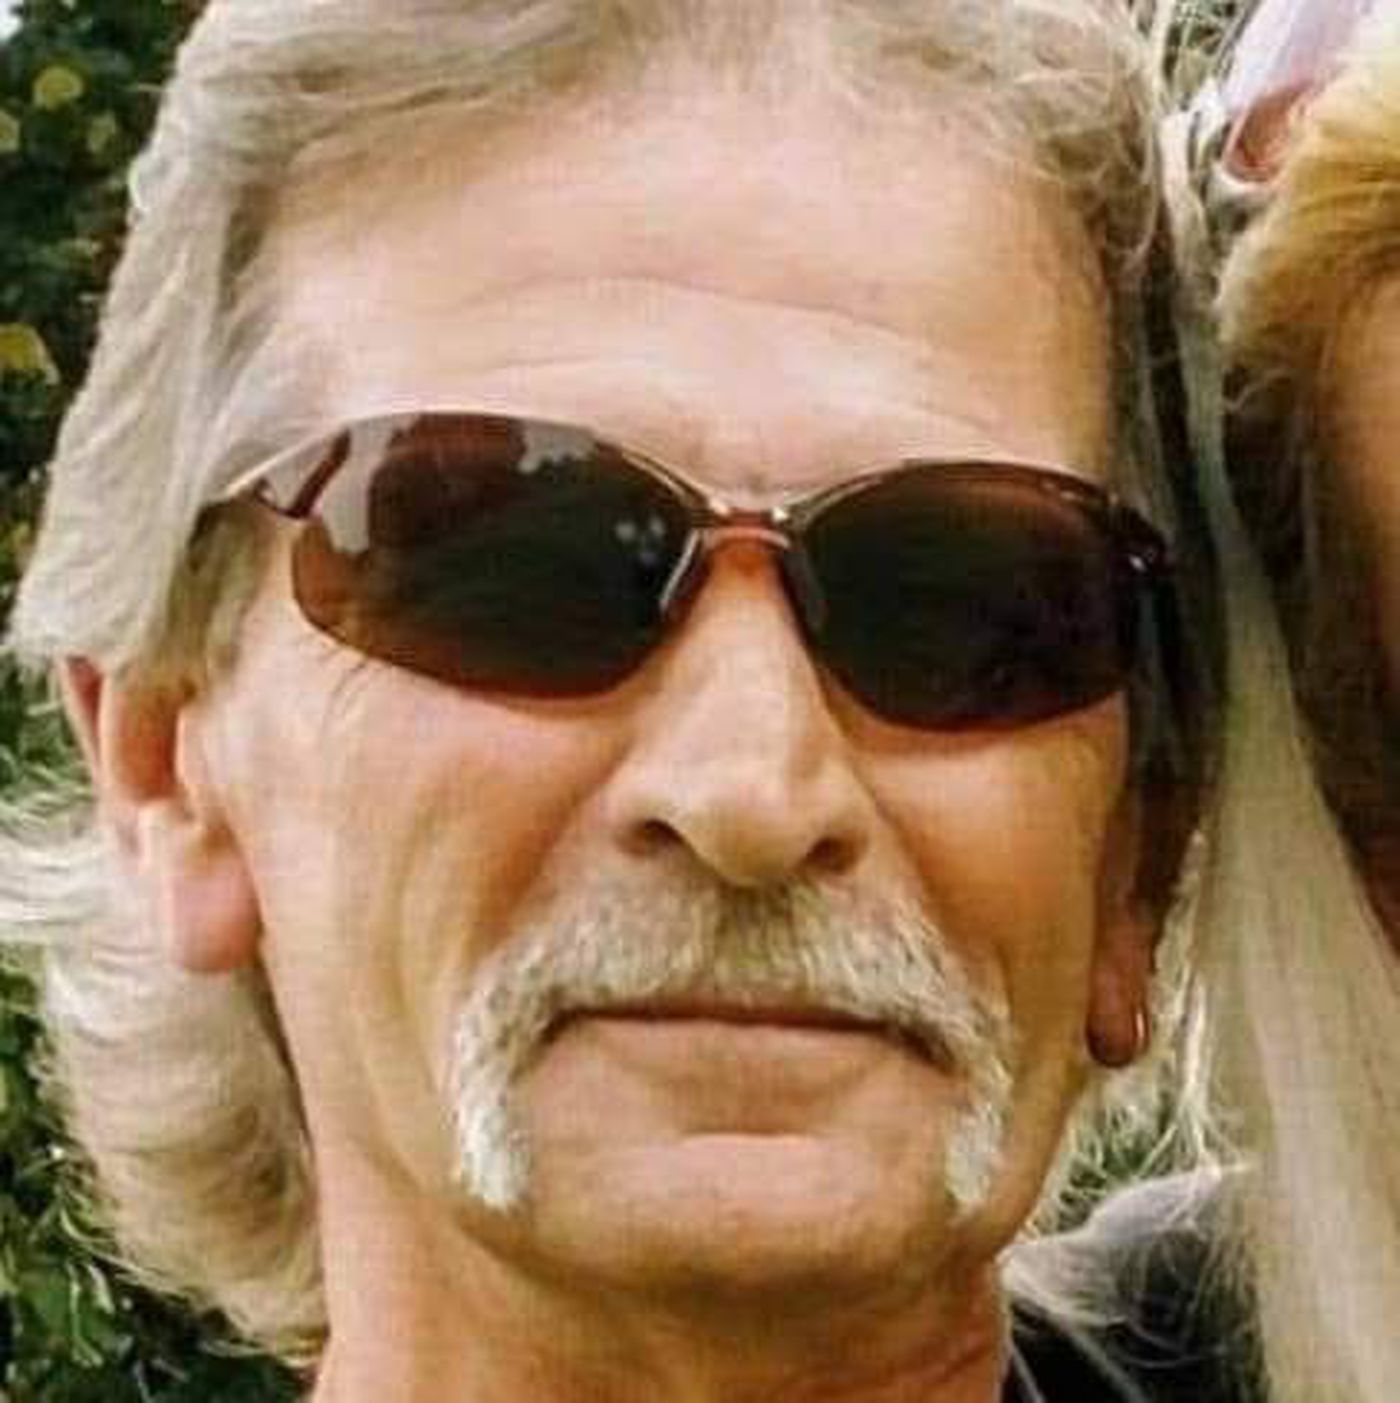 Terry L. Nichols, 66, of Gouverneur